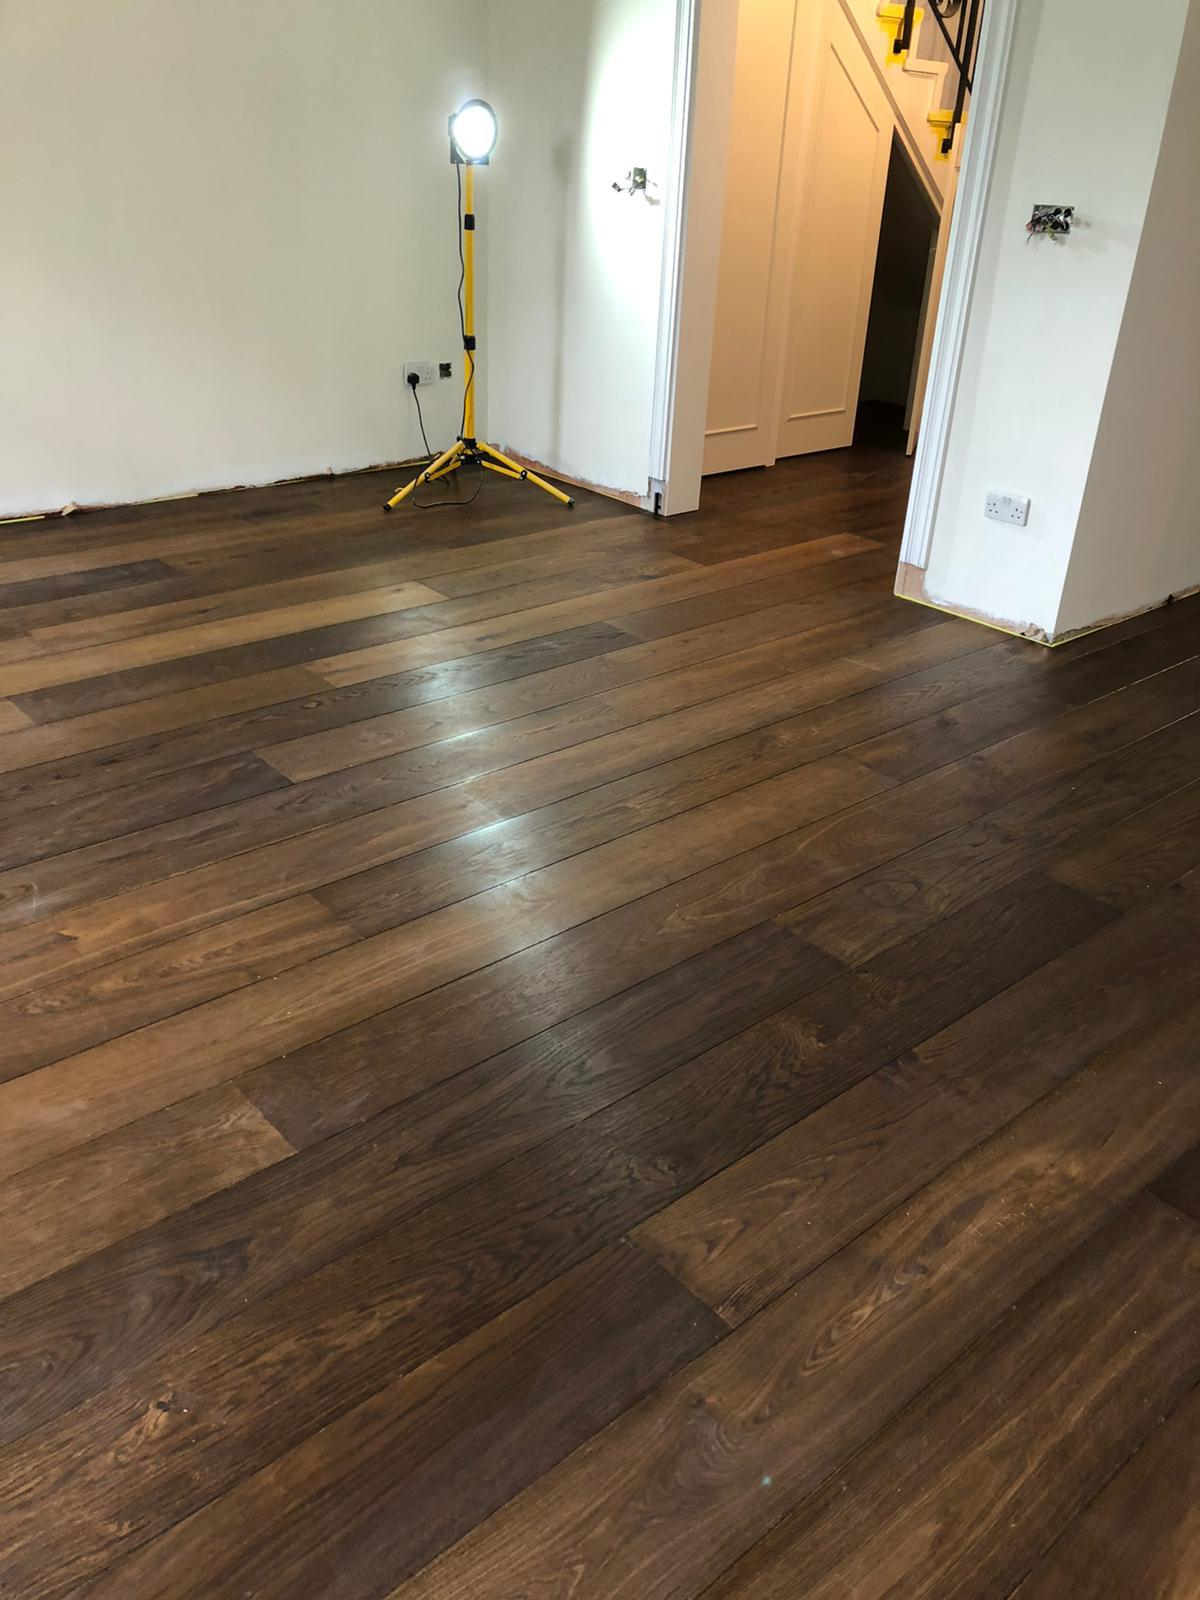 Rovers Flooring European Oak to Premises 2